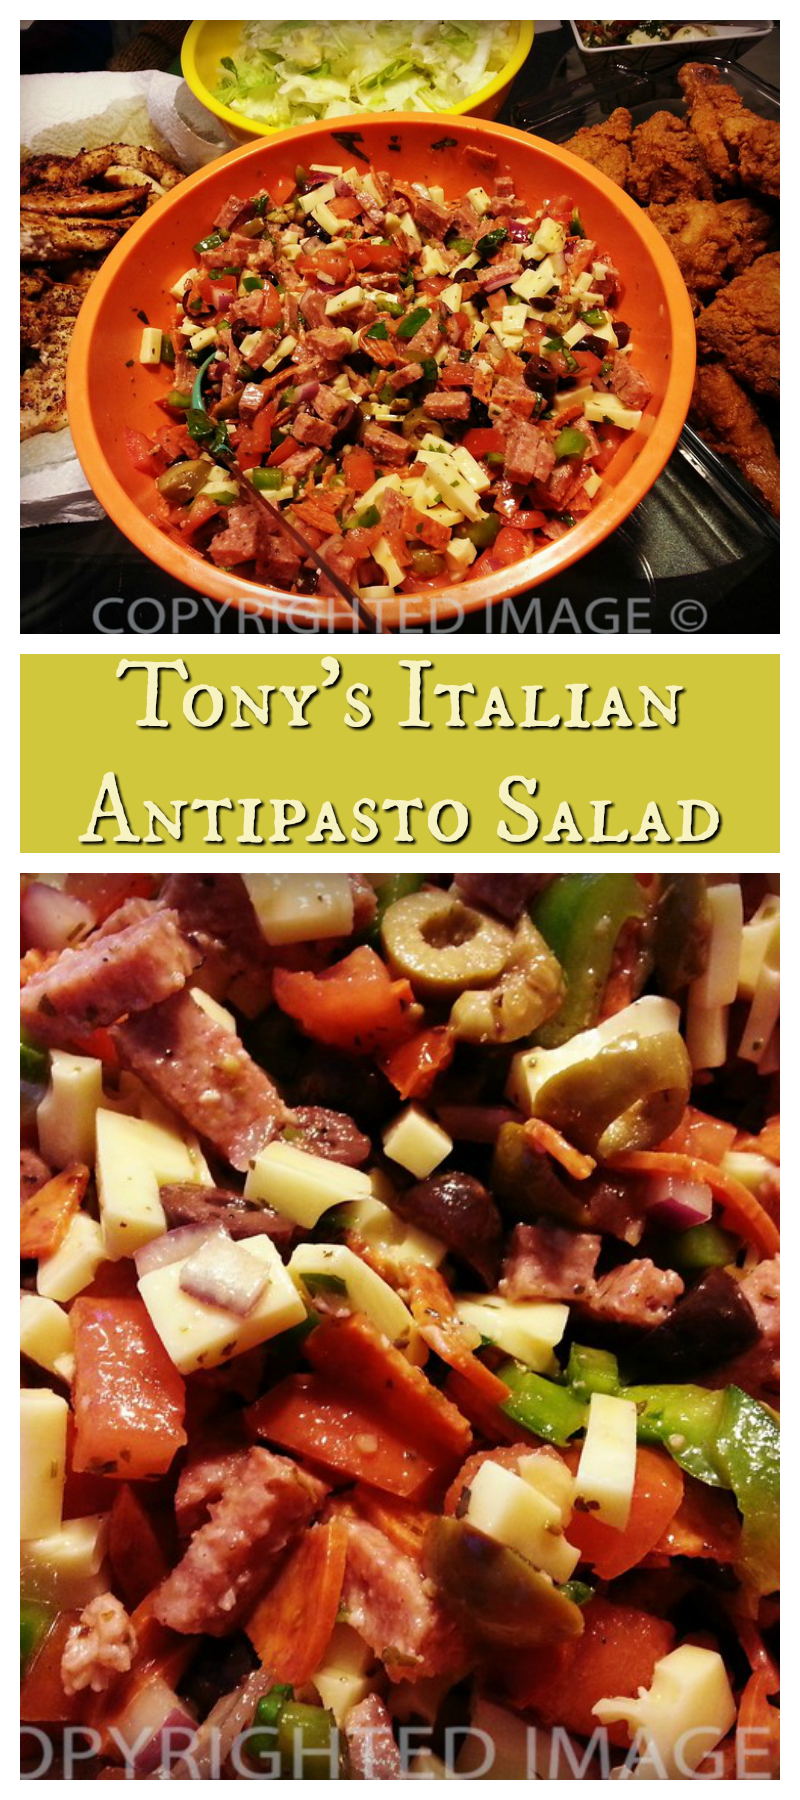 Tony's is the best Italian Antipasto Salad! Memories are made of this. We've made the original recipe a traditional summer menu item.